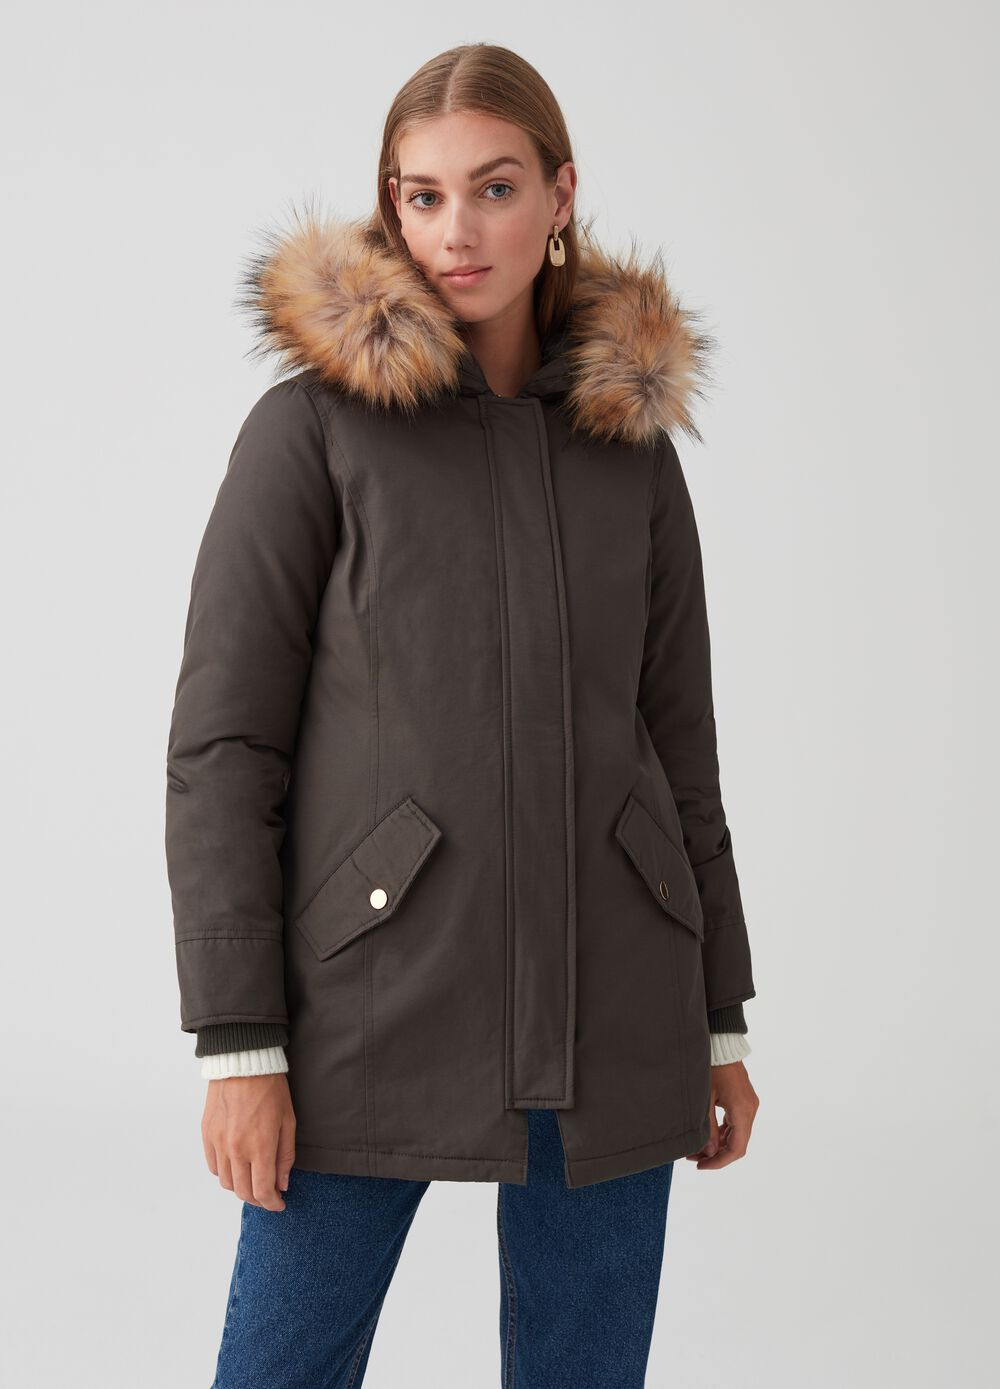 Parka with hood and pockets